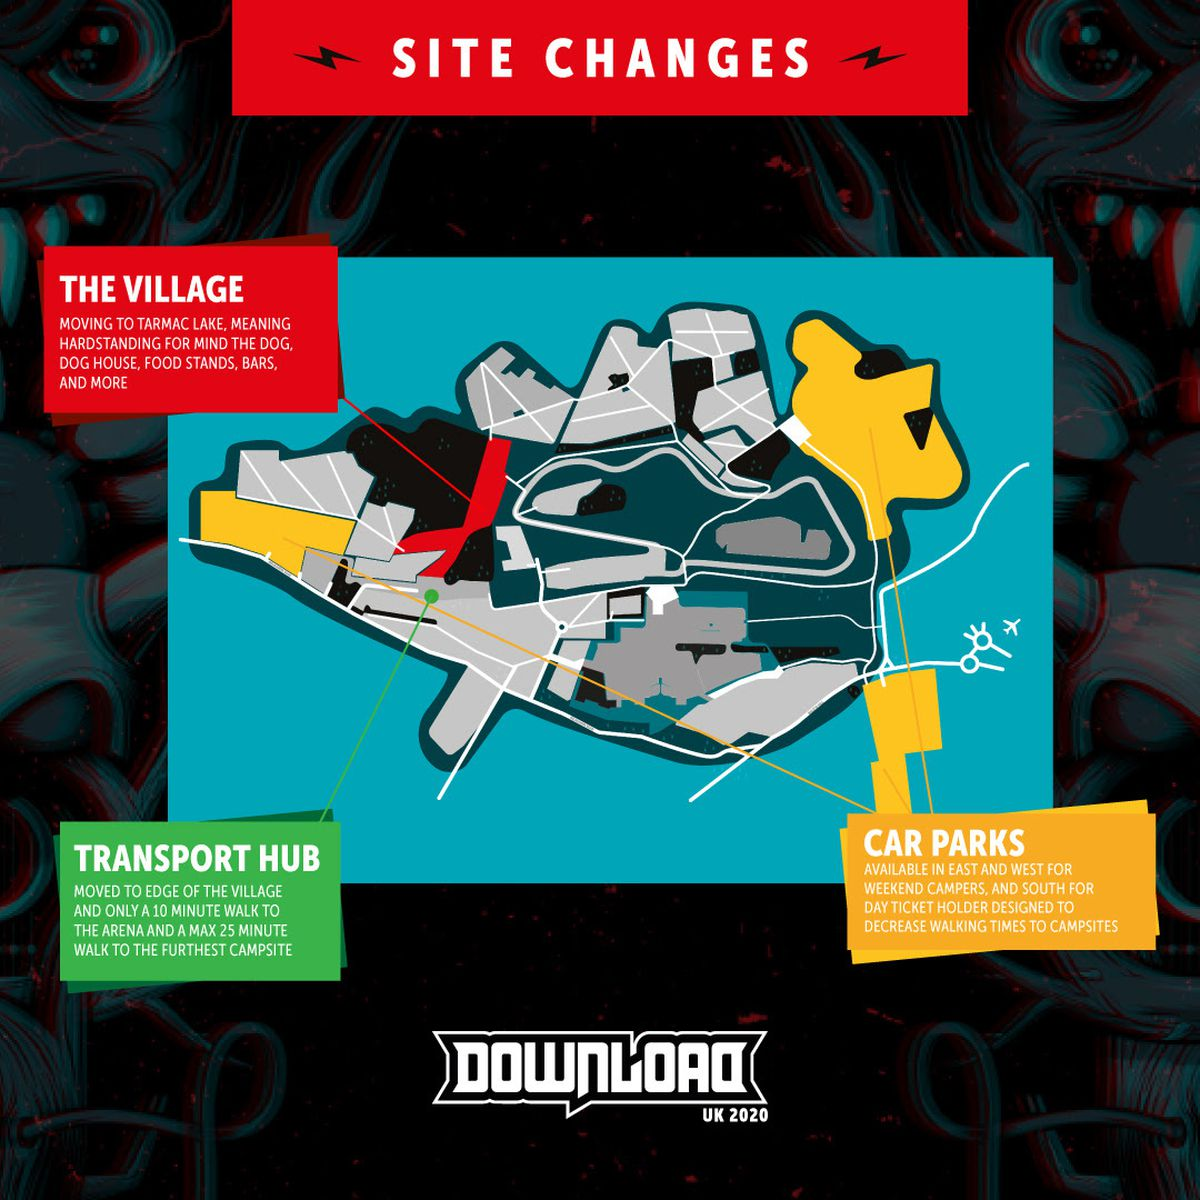 Site changes